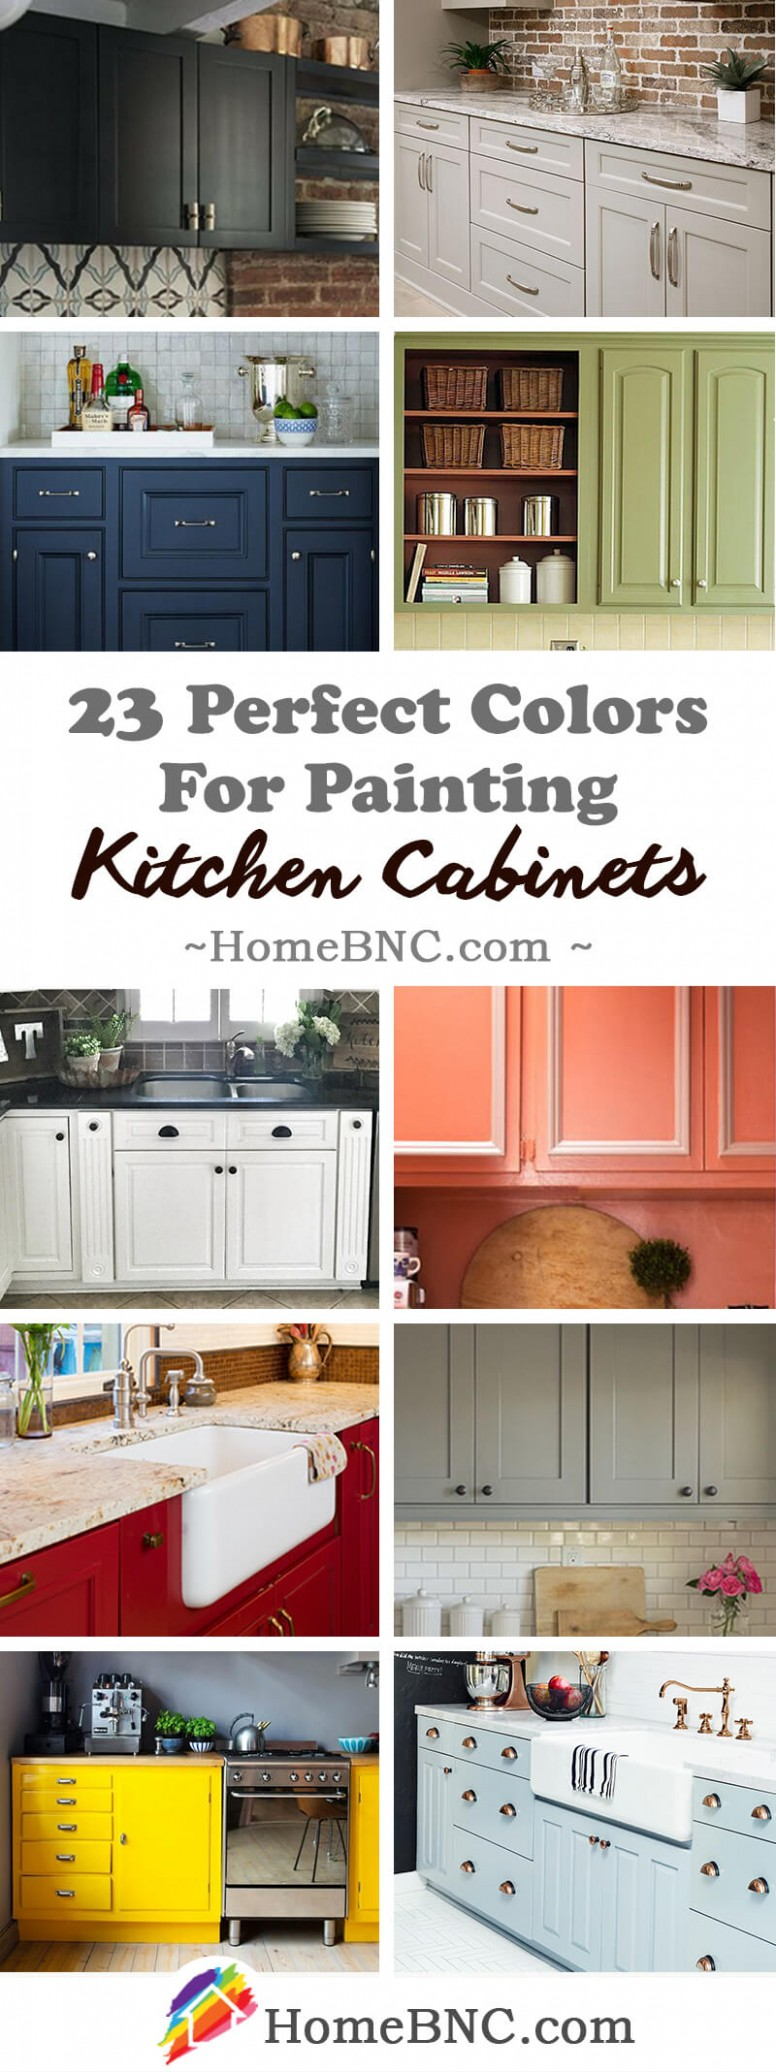 11 Best Kitchen Cabinets Painting Color Ideas and Designs for 11 - Best Home Kitchen Cabinets